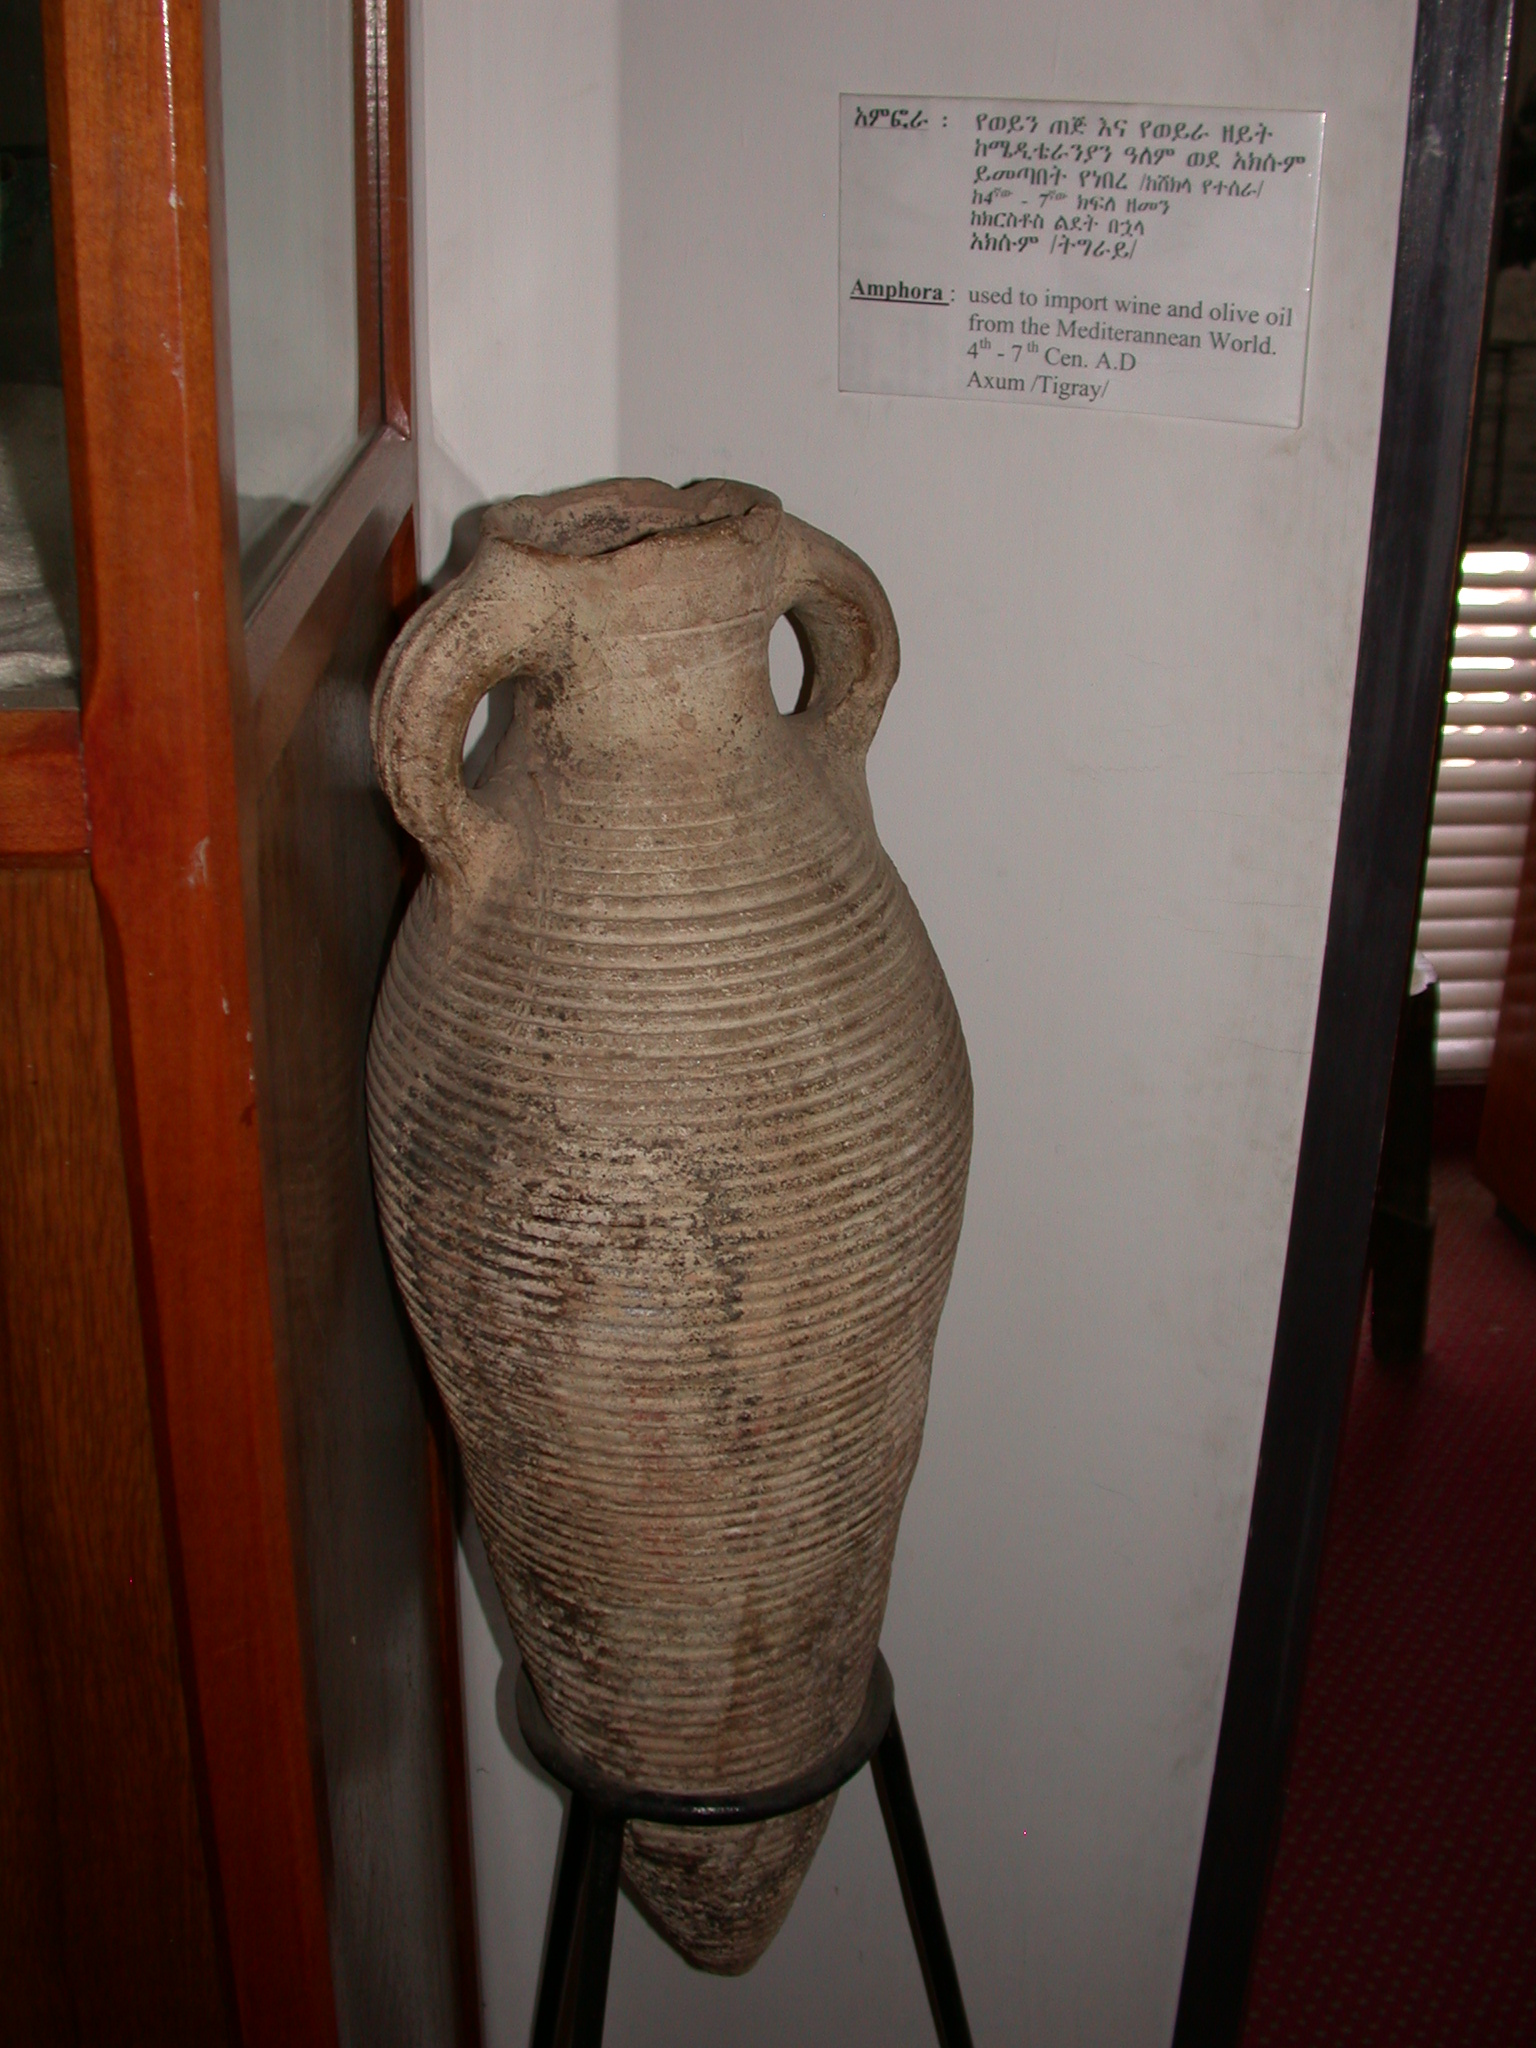 Amphora to Import Olive Oil to Axum, Tigrai, in 4th-7th Century CE, Now Located in National Museum, Addis Ababa, Ethiopia